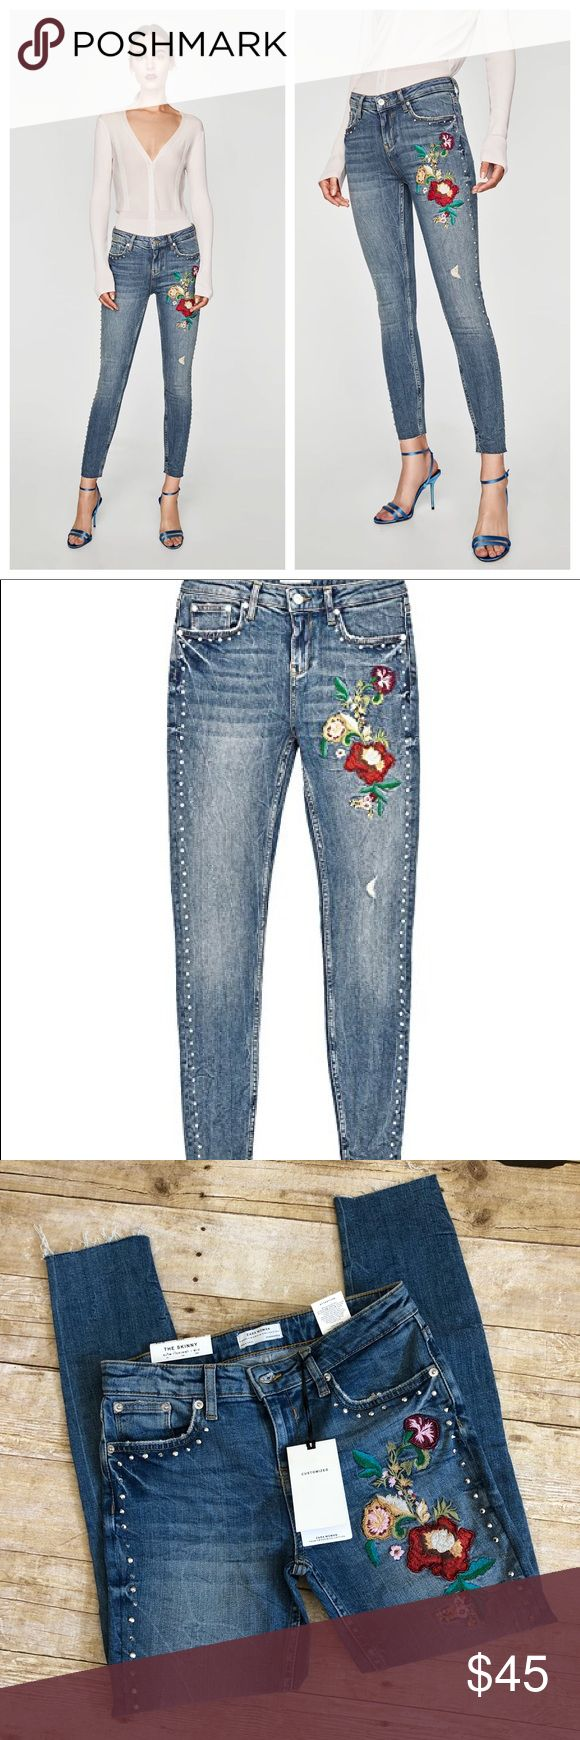 """Zara Woman The Skinny Studs and Embroidery Jeans Premium skinny denim by Zara Woman. Features beautiful floral embroidery with beading at thigh, studs down the sides, distressing throughout, super soft stretch denim. Material 99% cotton 1% elastane. Purchased on oxford street in London, England. Didn't fit once I got home, but I'm obsessed with these! Brand new with tags.  26"""" inseam 14"""" waist across Zara Jeans Skinny"""